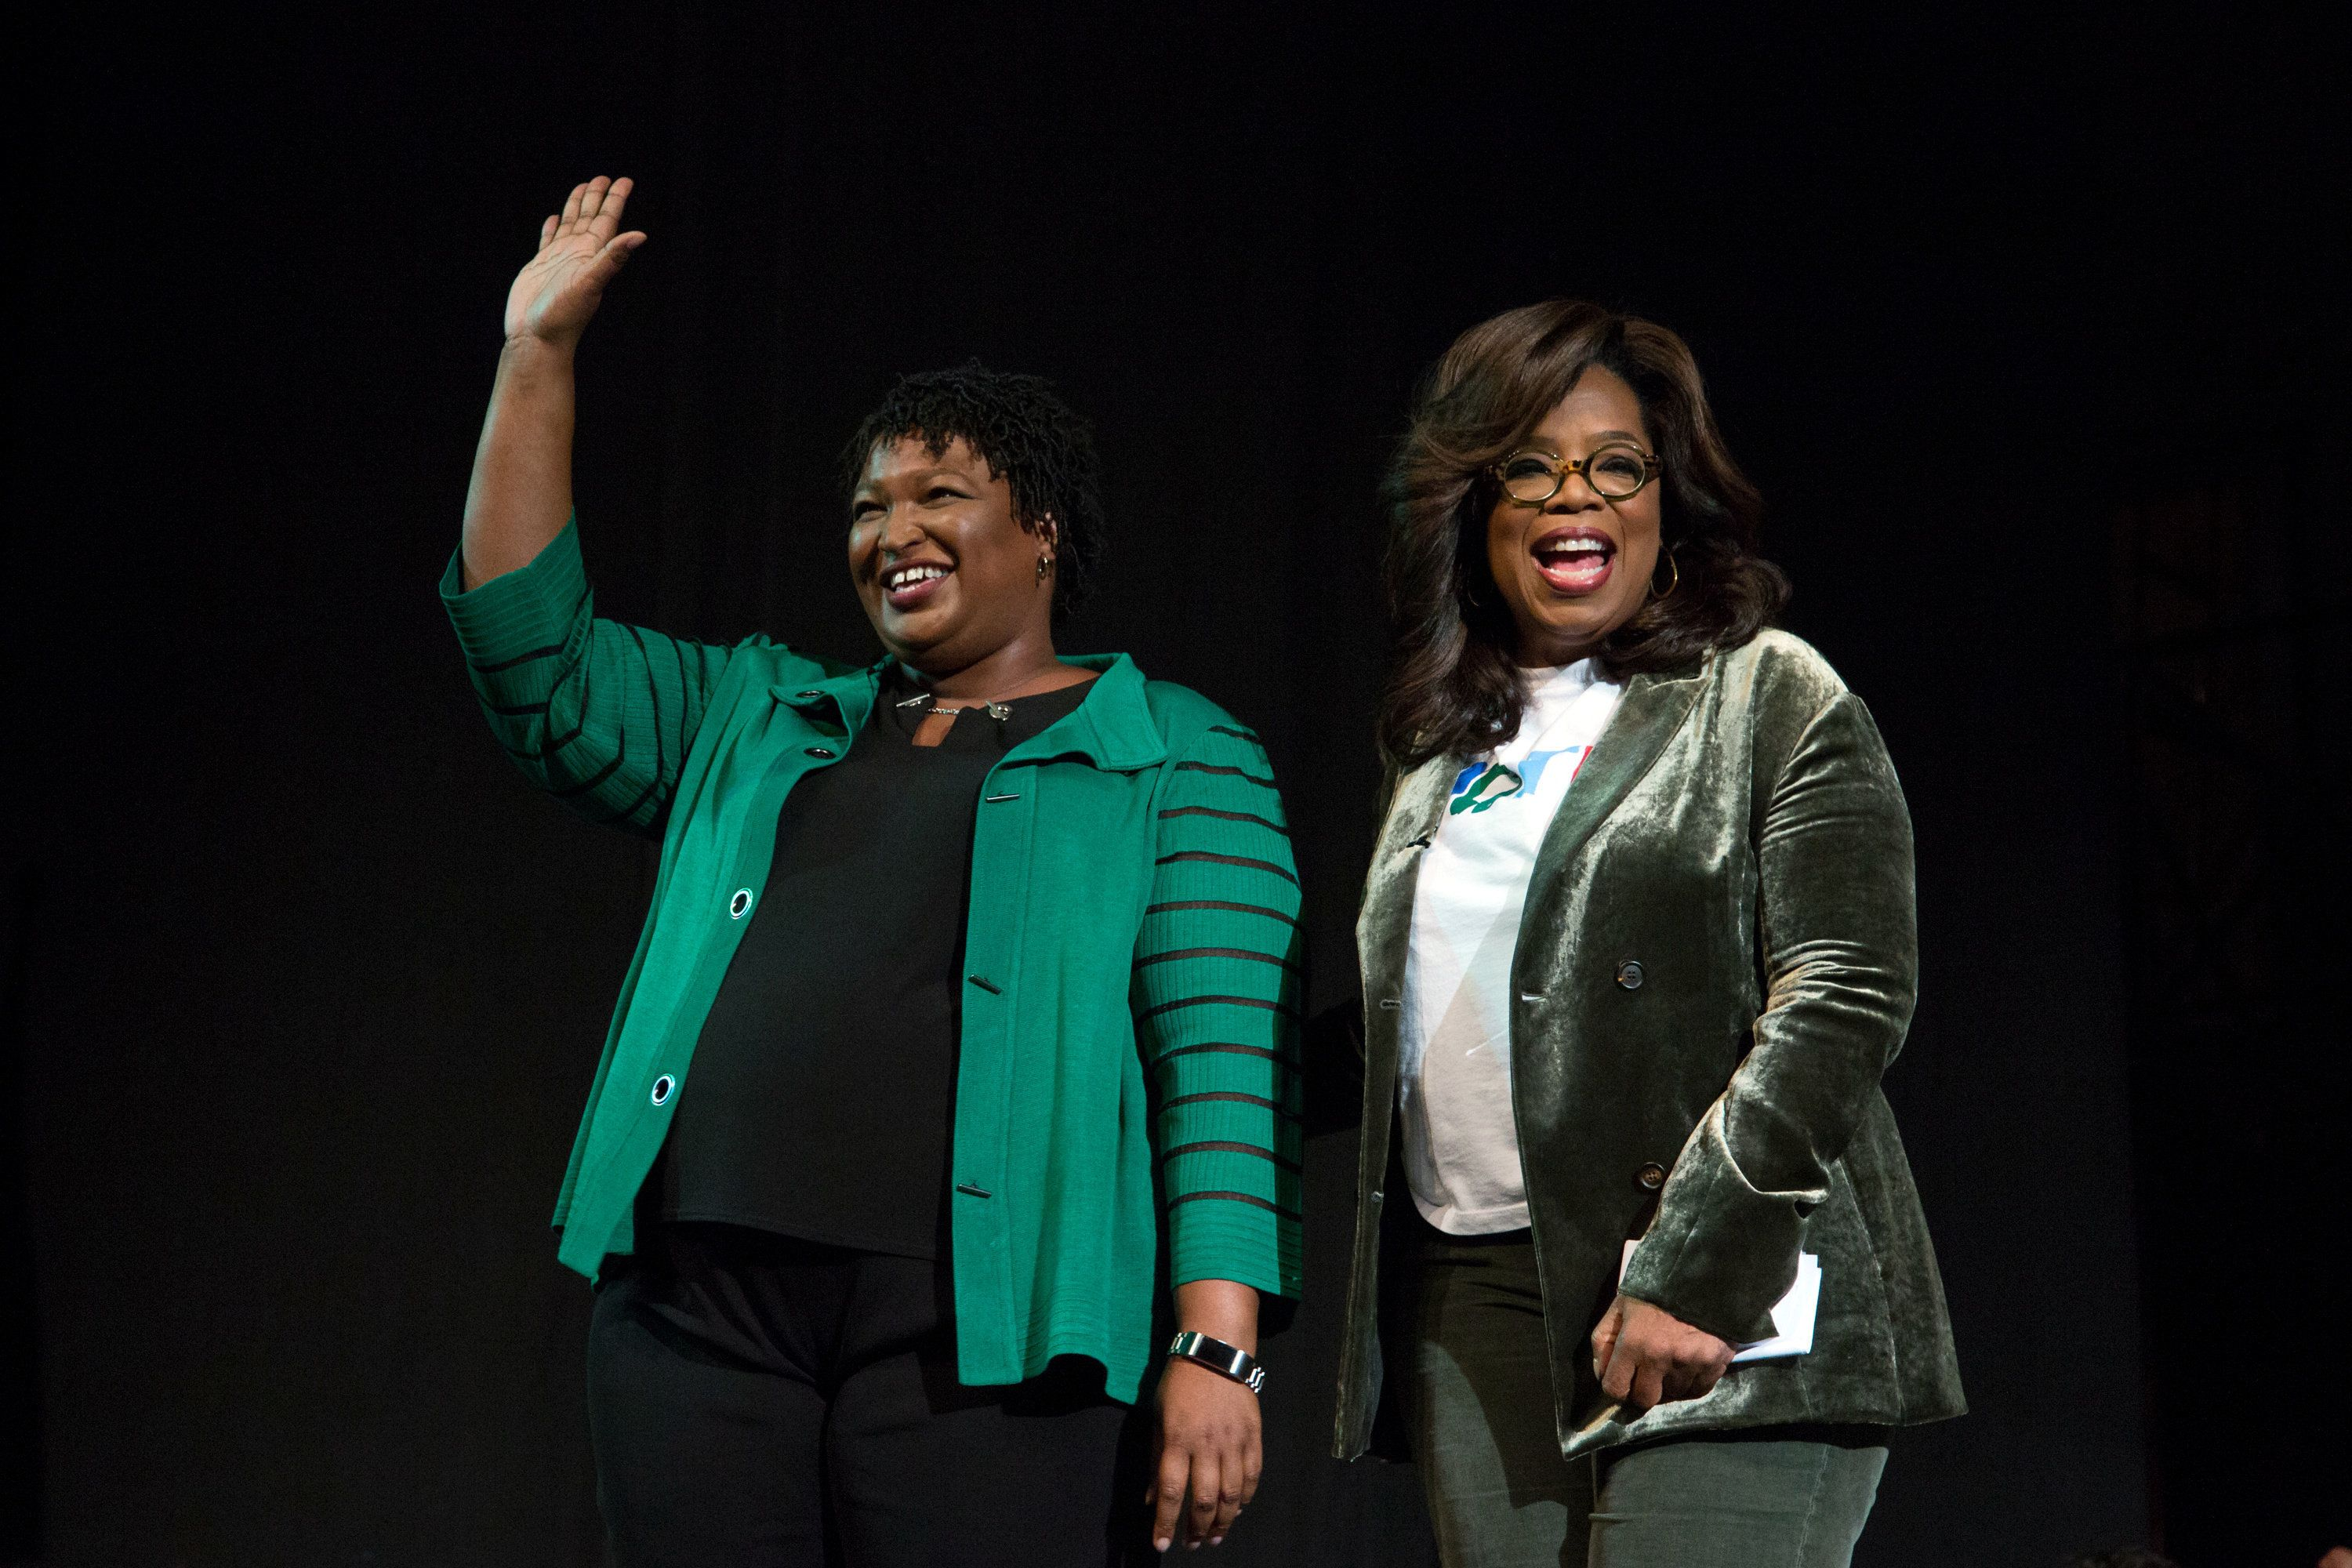 Oprah Winfrey takes part in a town hall meeting with Democratic gubernatorial candidate Stacey Abrams in Marietta, Ga., on Nov. 1, 2018.